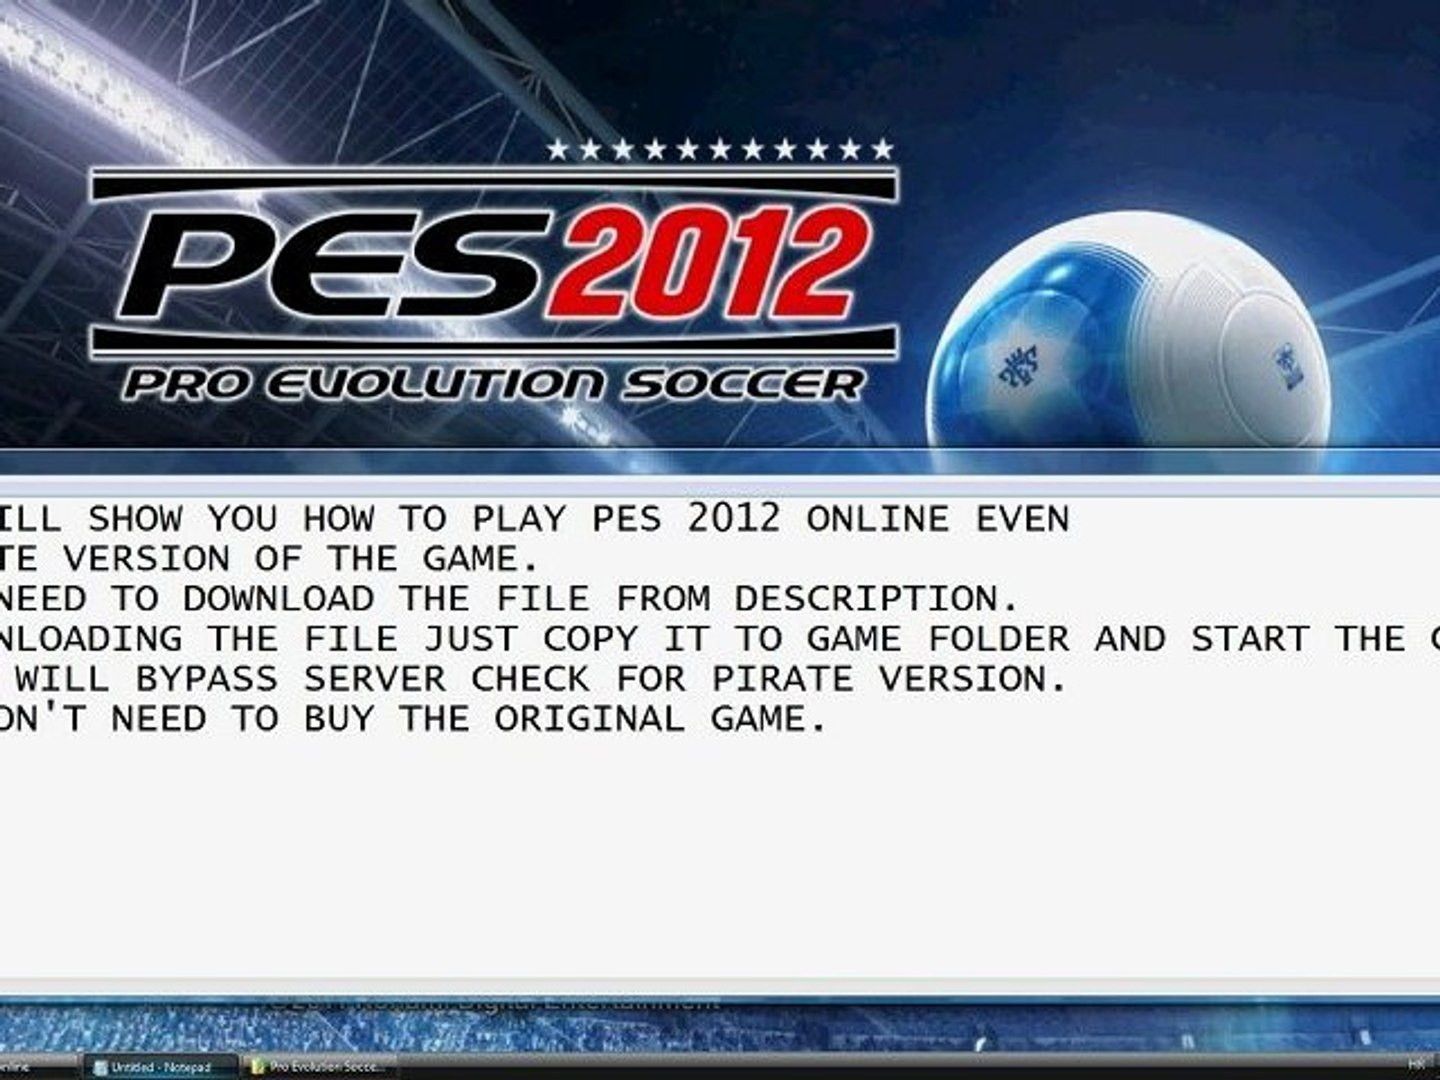 How to play PES 2012 online for free